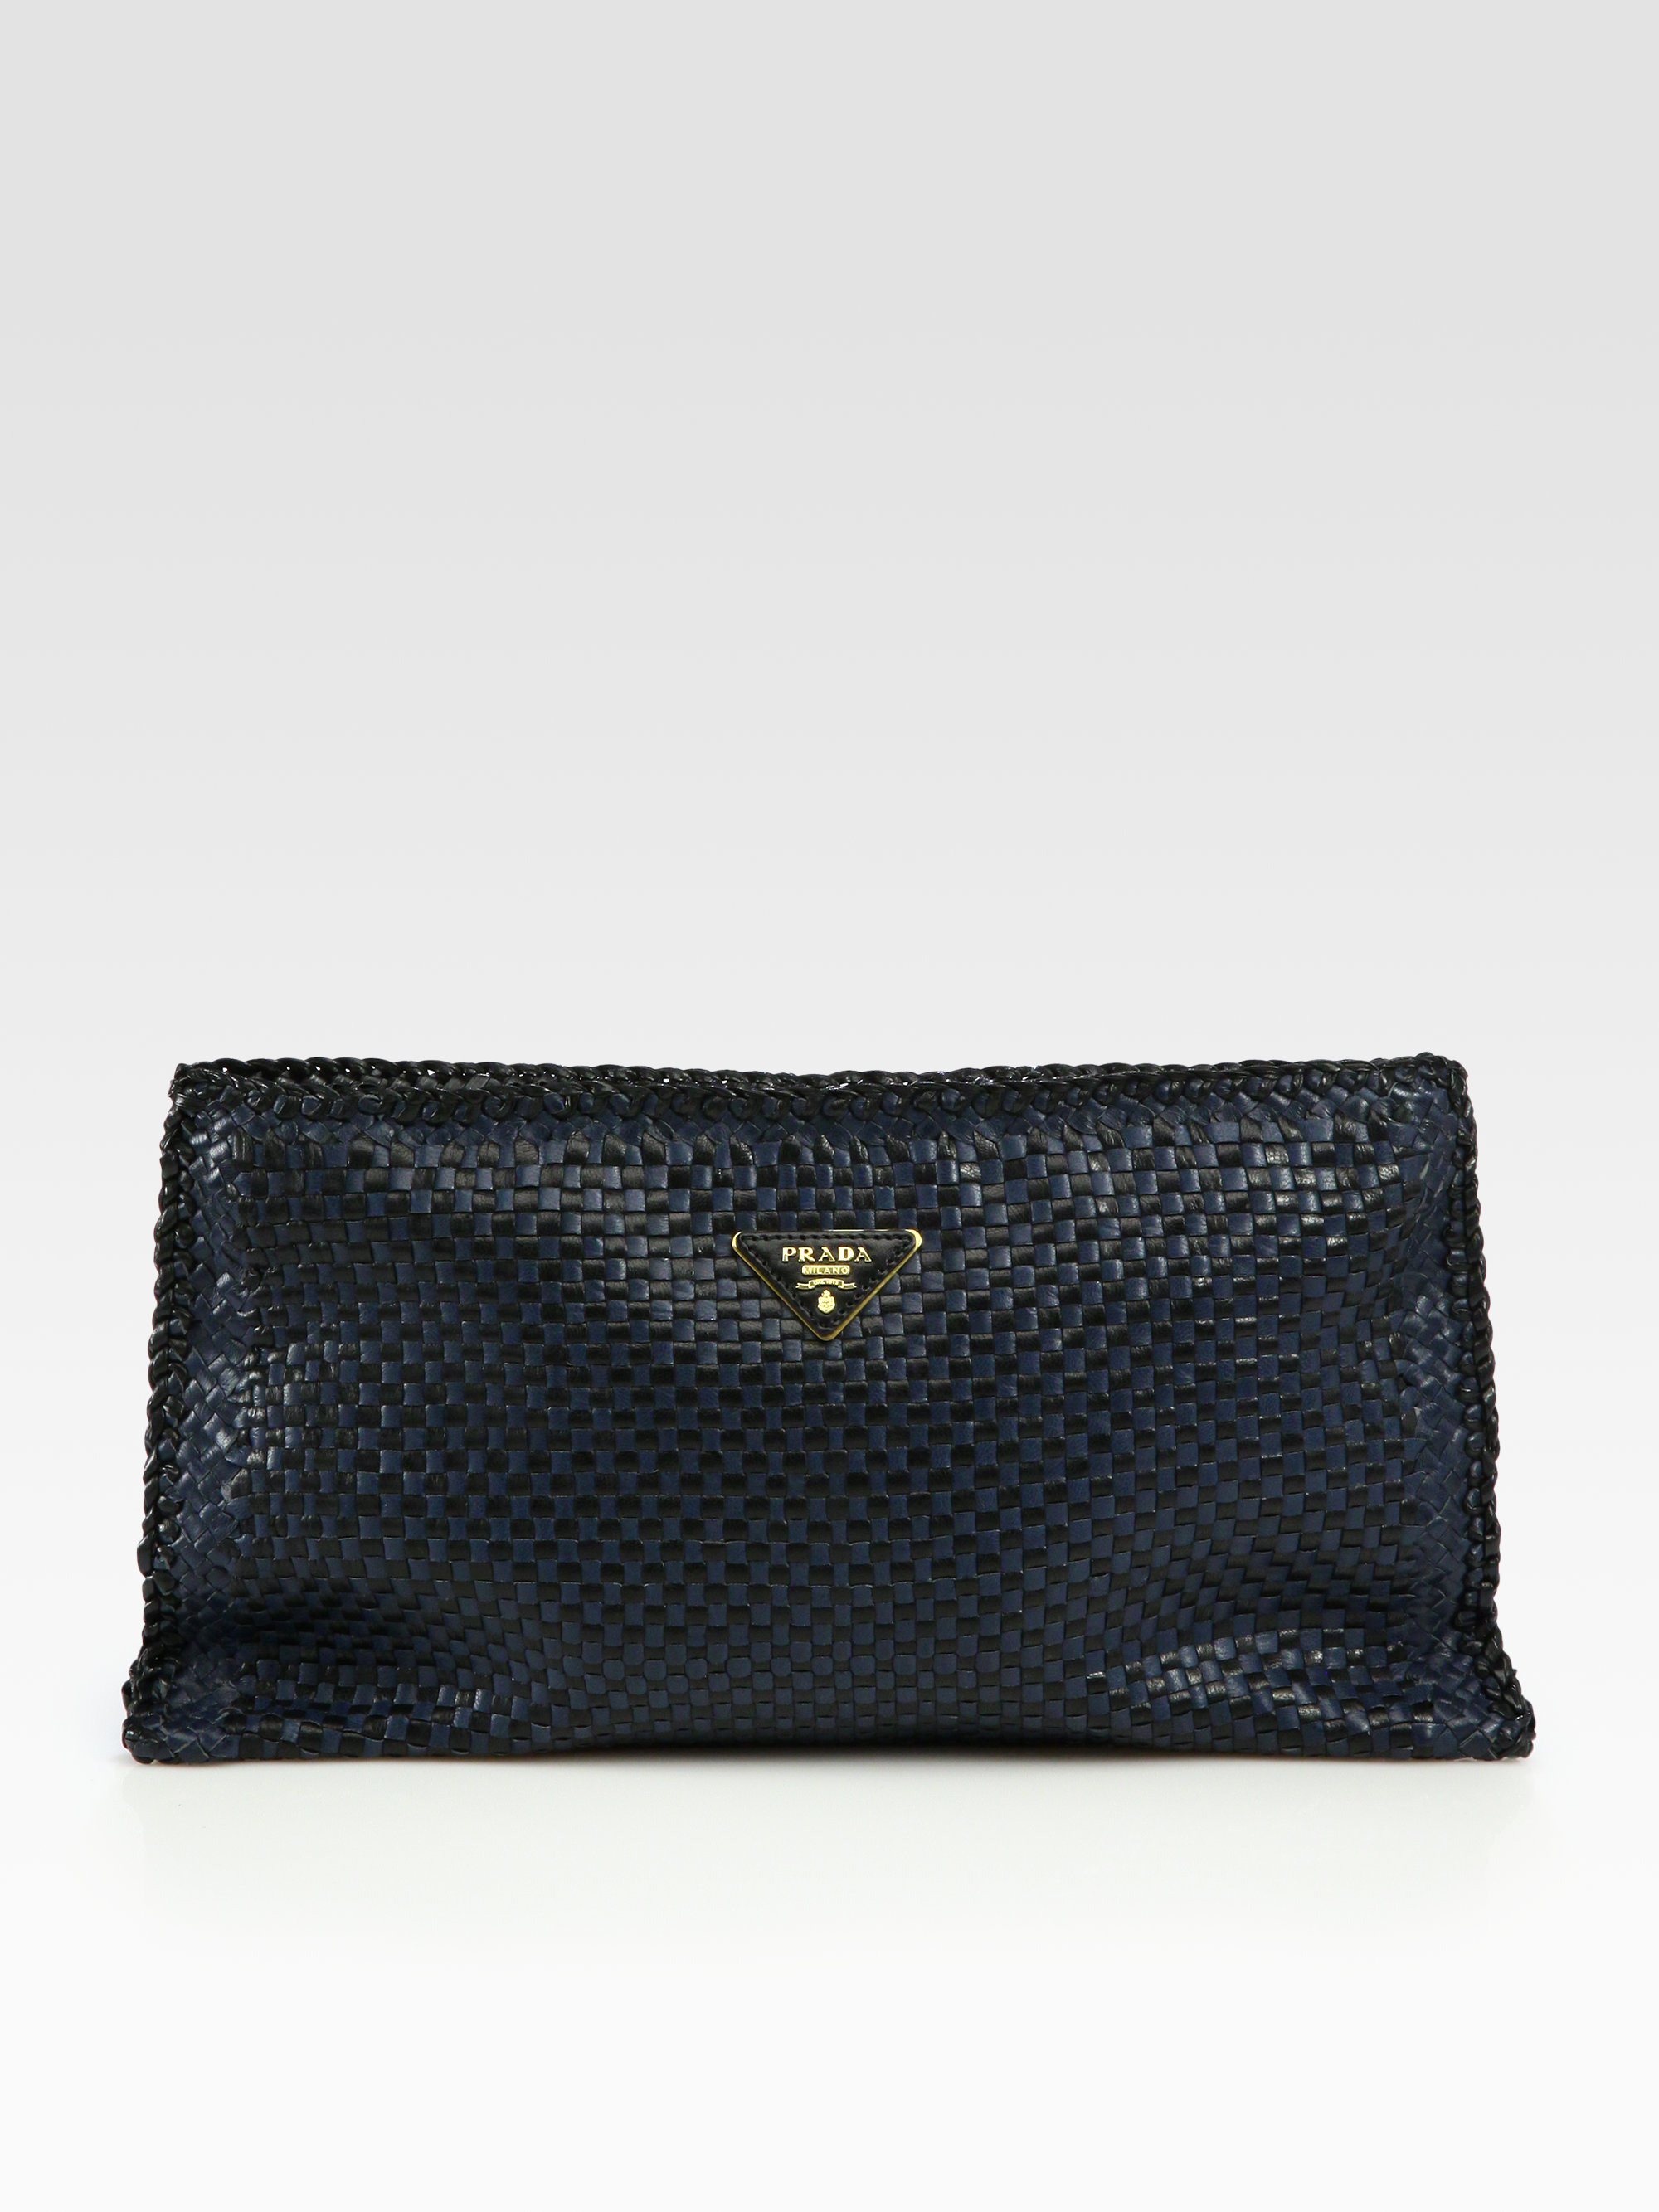 Pendleton Goat Leather Pouch in Black Goatskin Burberry zLZJU